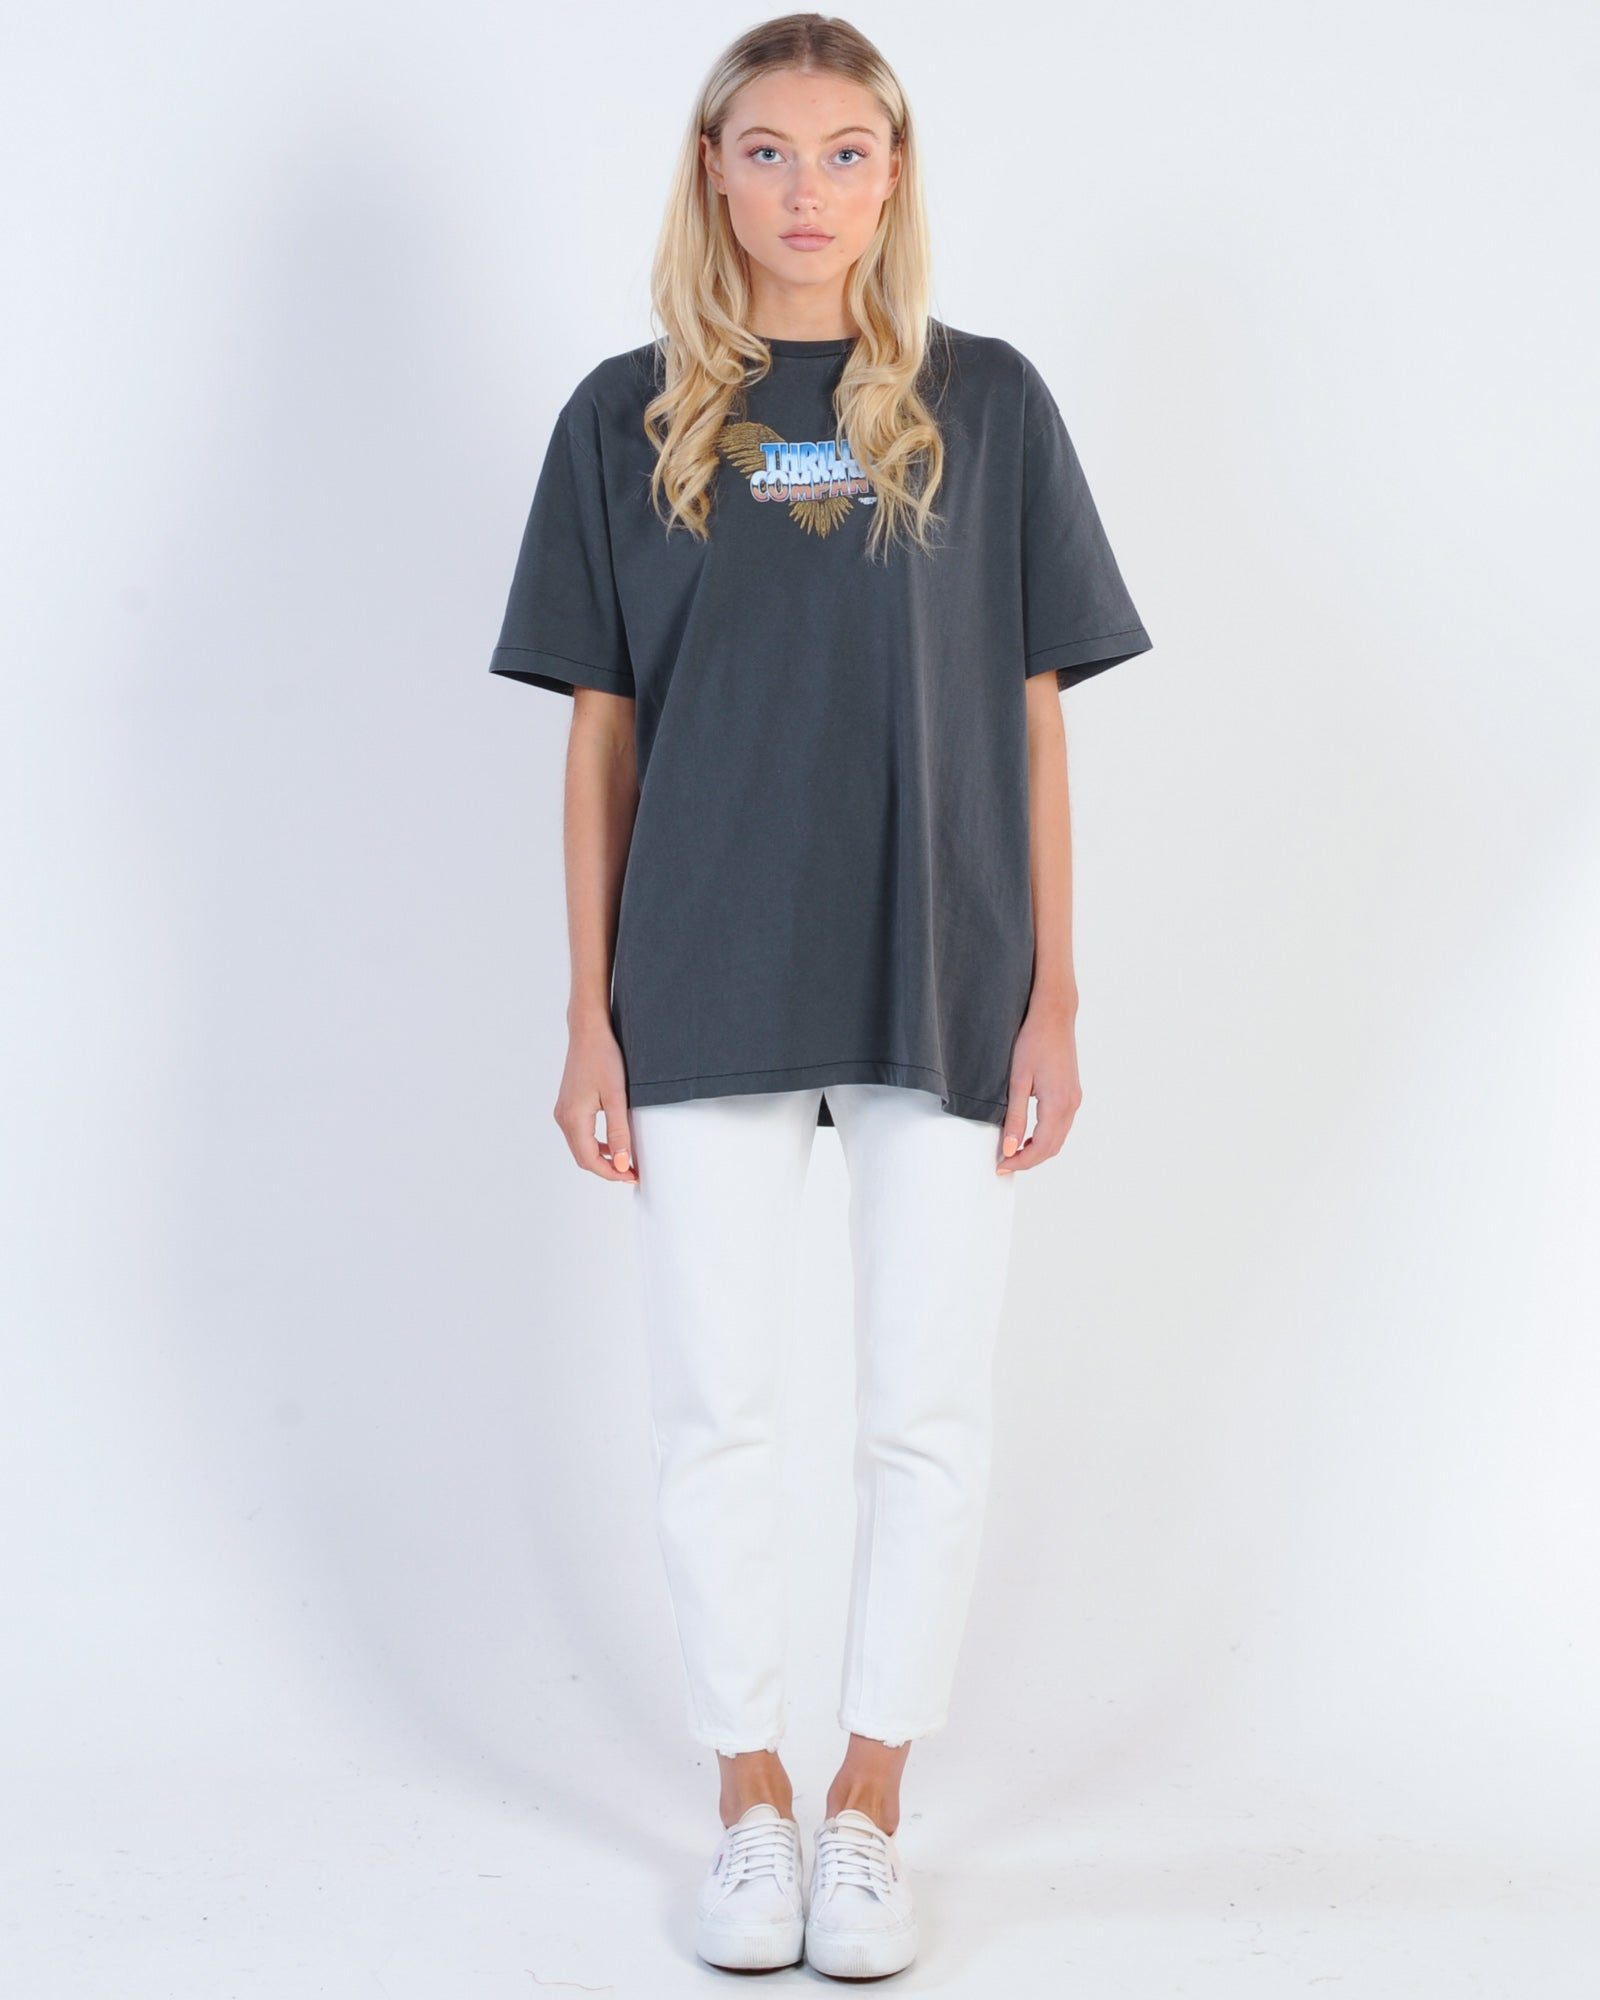 Thrills Immaculate Tee - Black